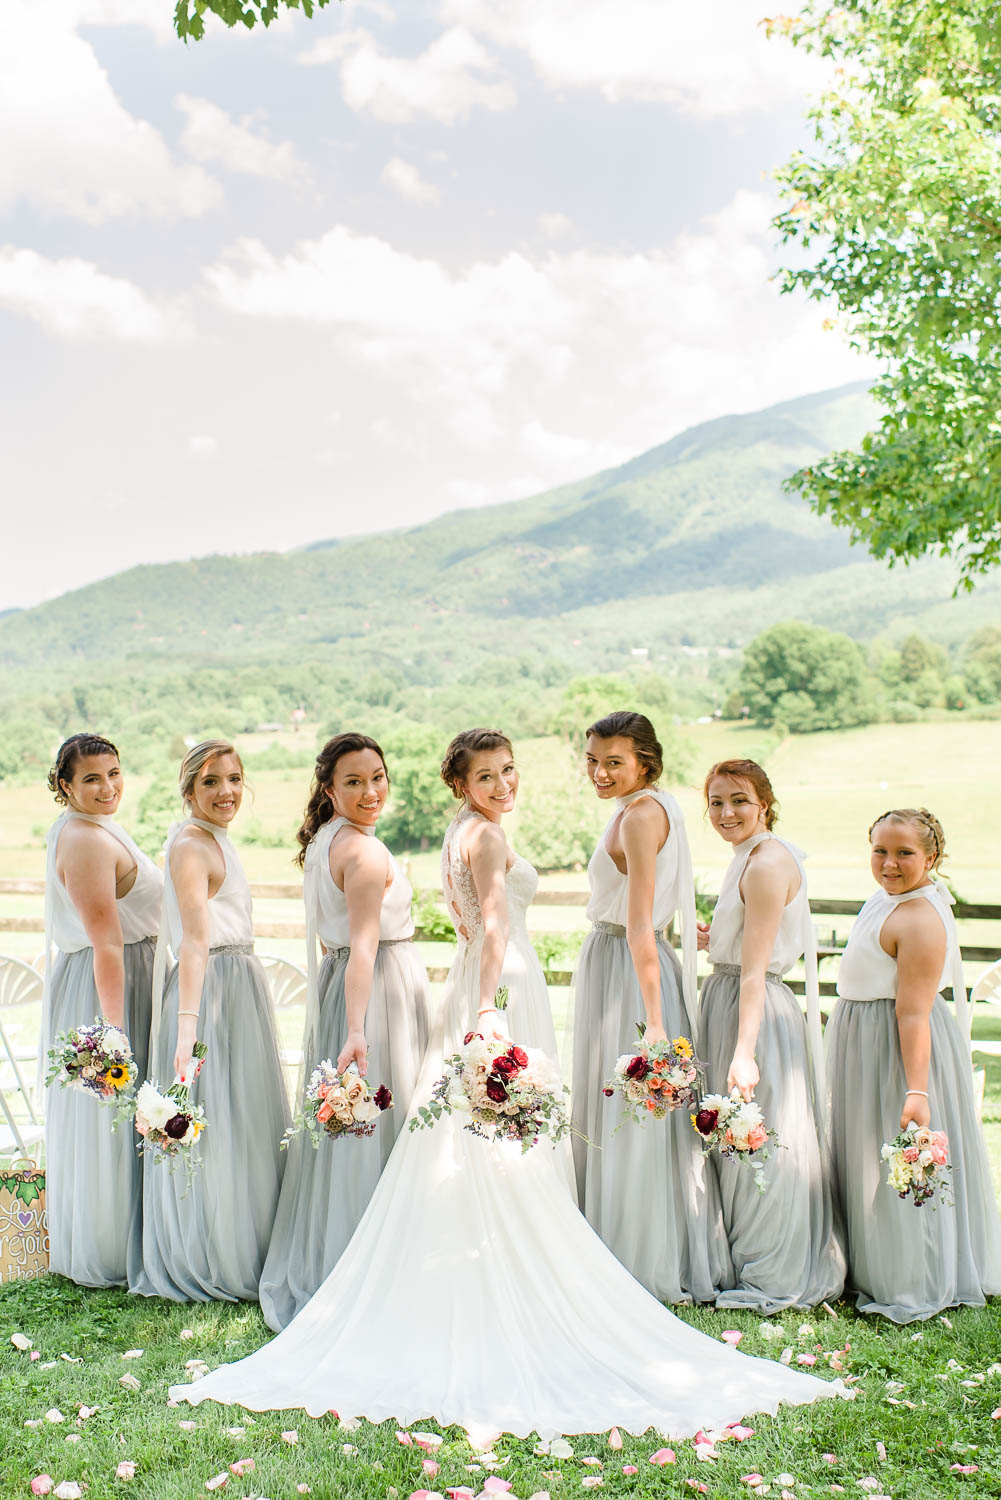 bridesmaids wearing long gray tulle skirts and white tops